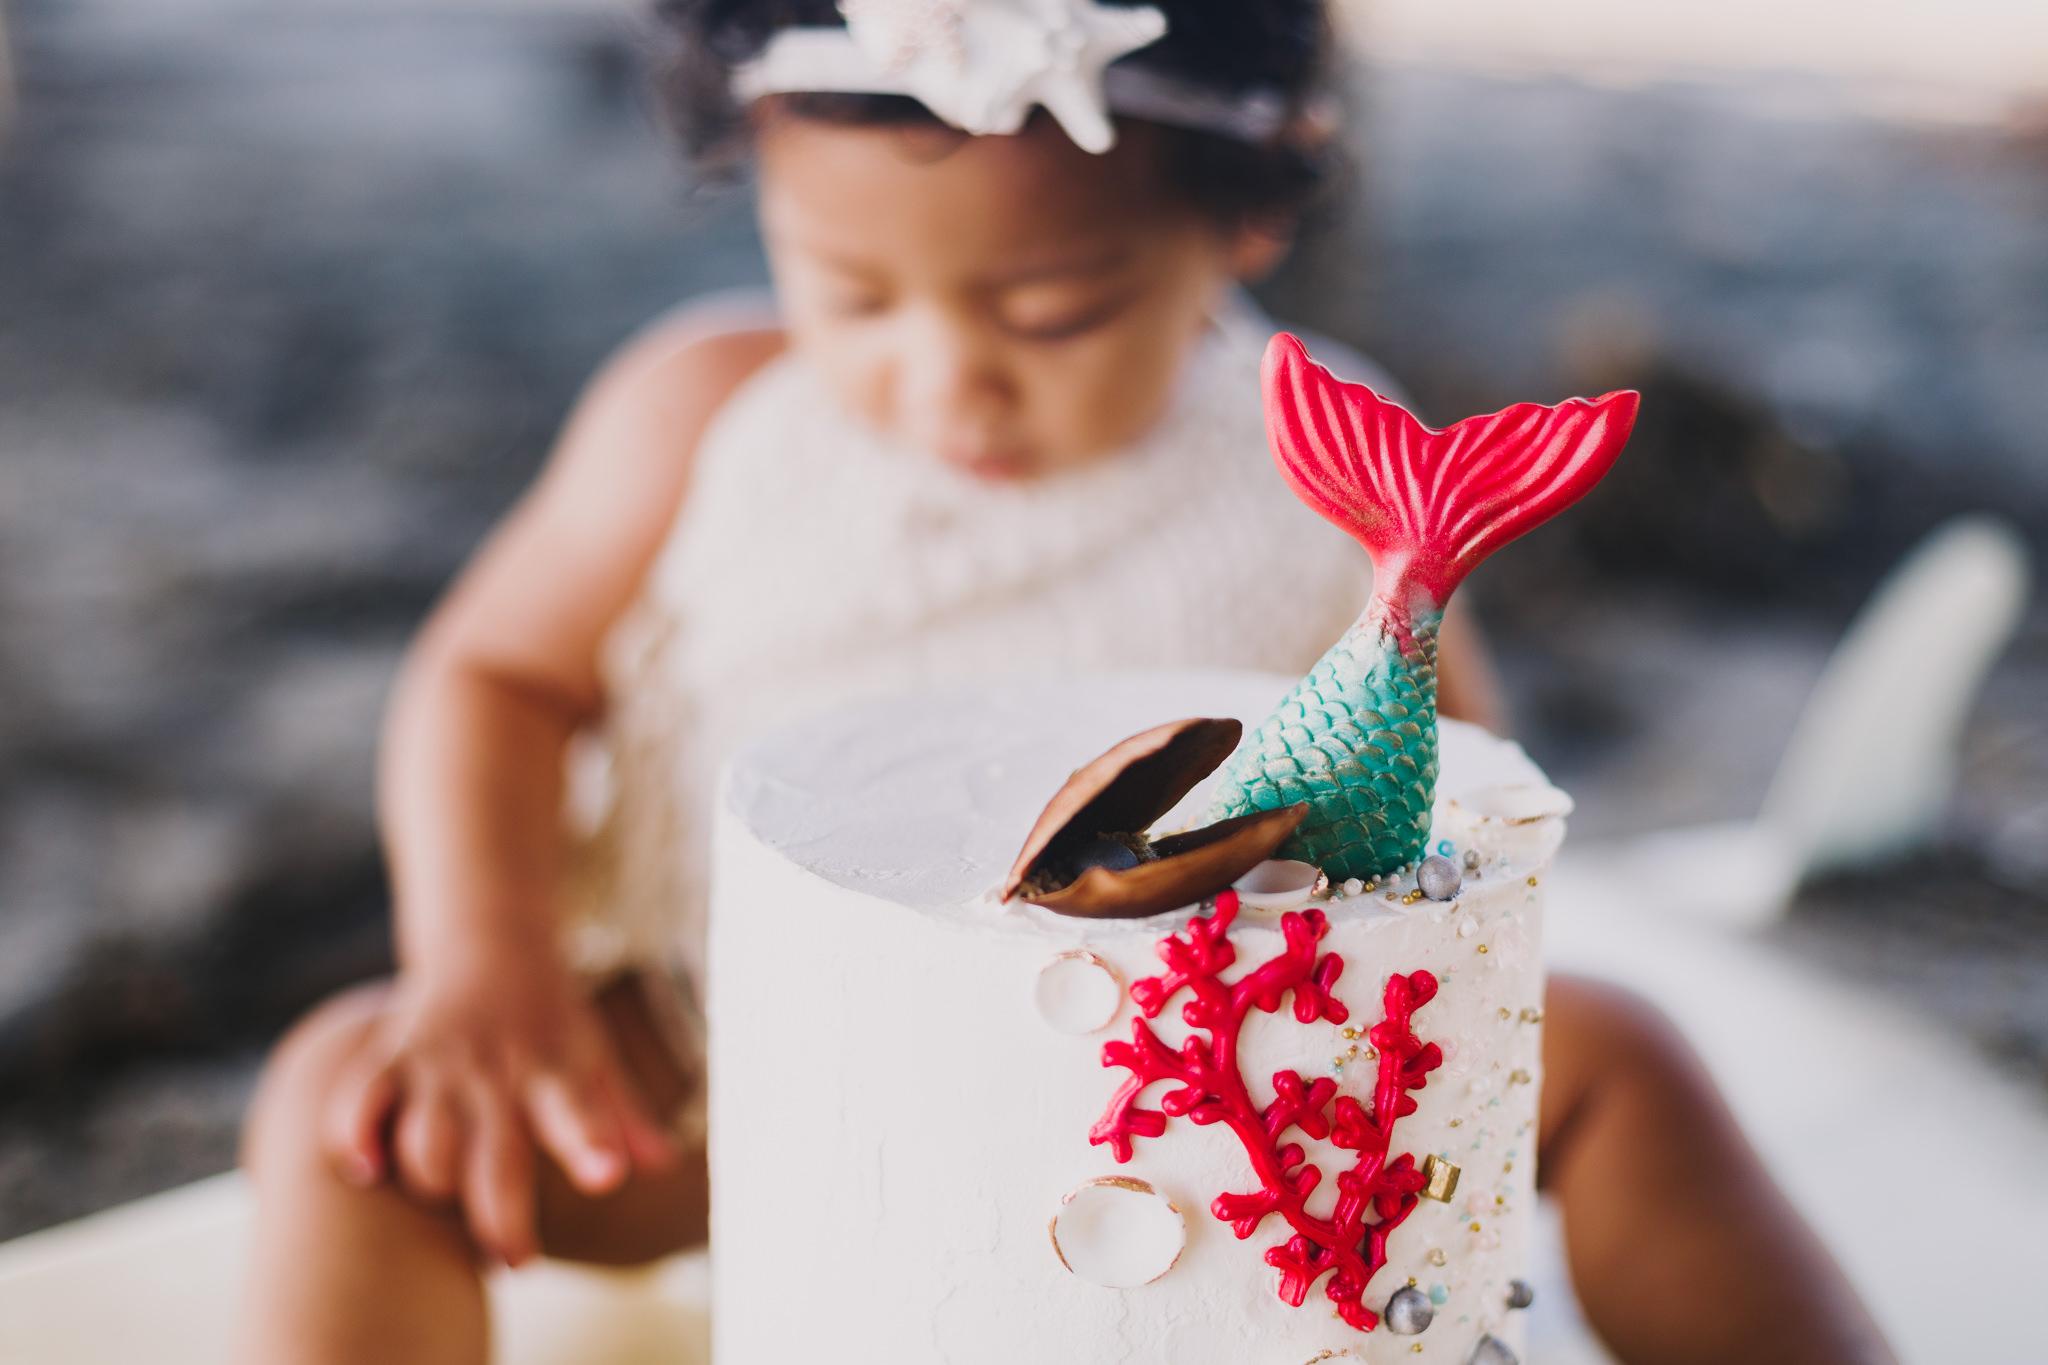 Archer Inspired Photography Cake Smash First Birthday Lifestyle Natural Light Documentary Family Photographer-8.jpg